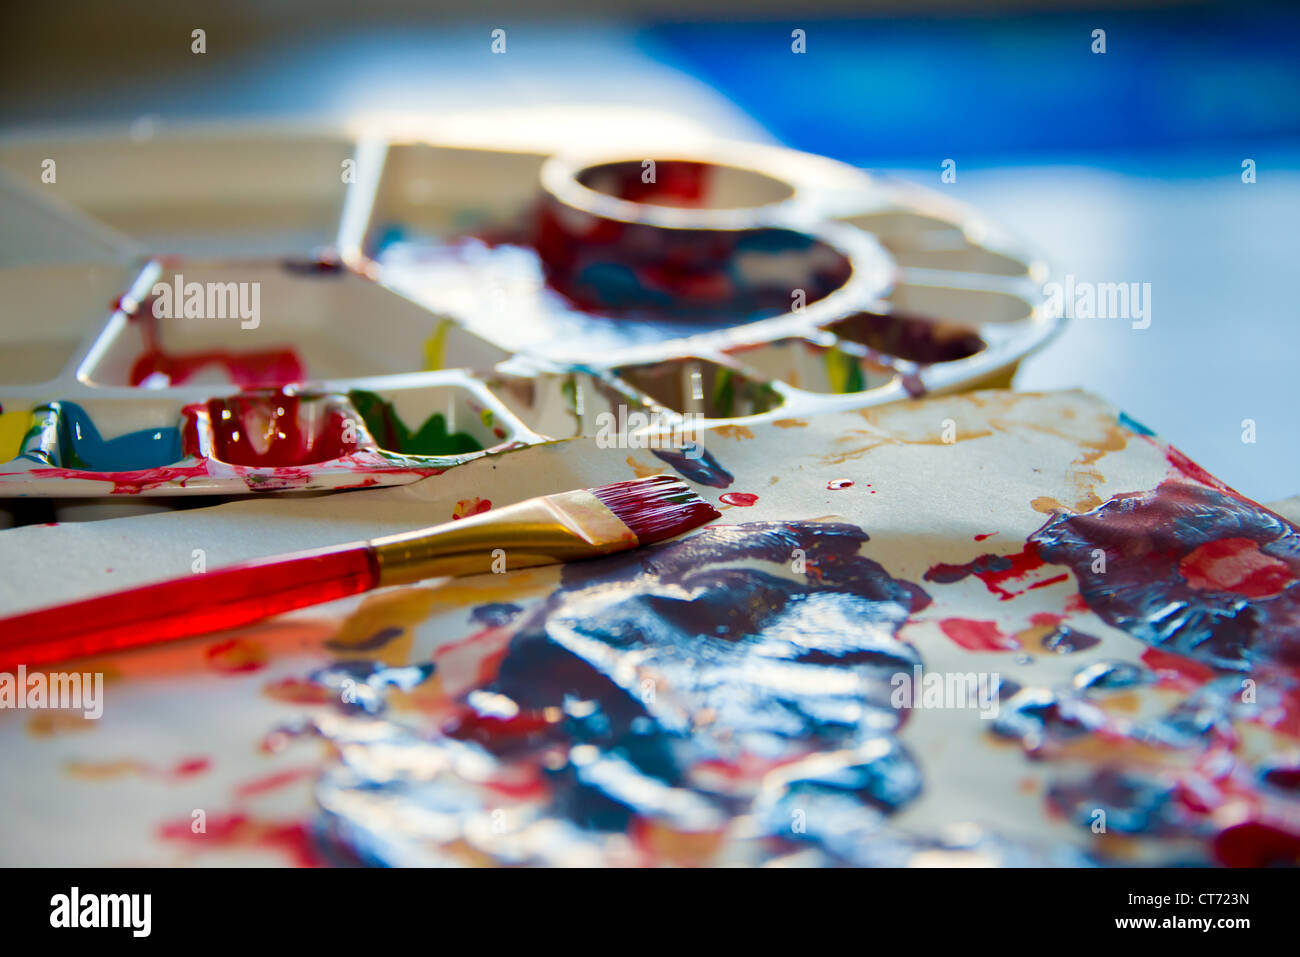 Children's paint palette and brush. - Stock Image